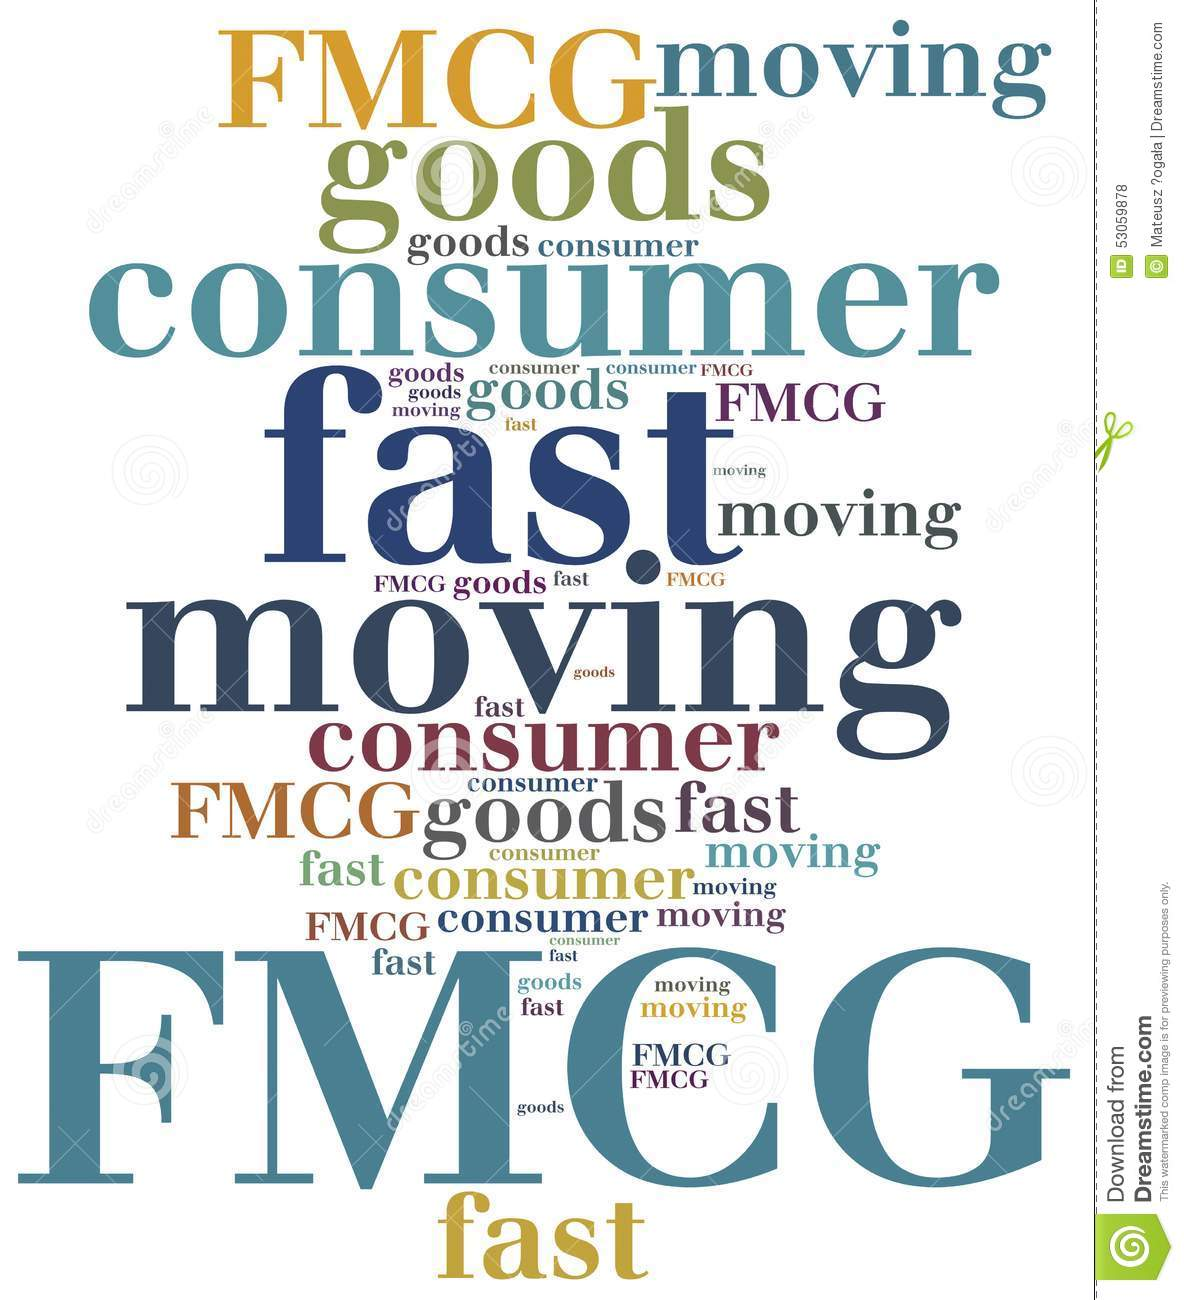 fast moving consumer goods Definition of fast moving consumer goods (fmcg): frequently purchased essential or non-essential goods such as food, toiletries, soft drinks, disposable diapers.